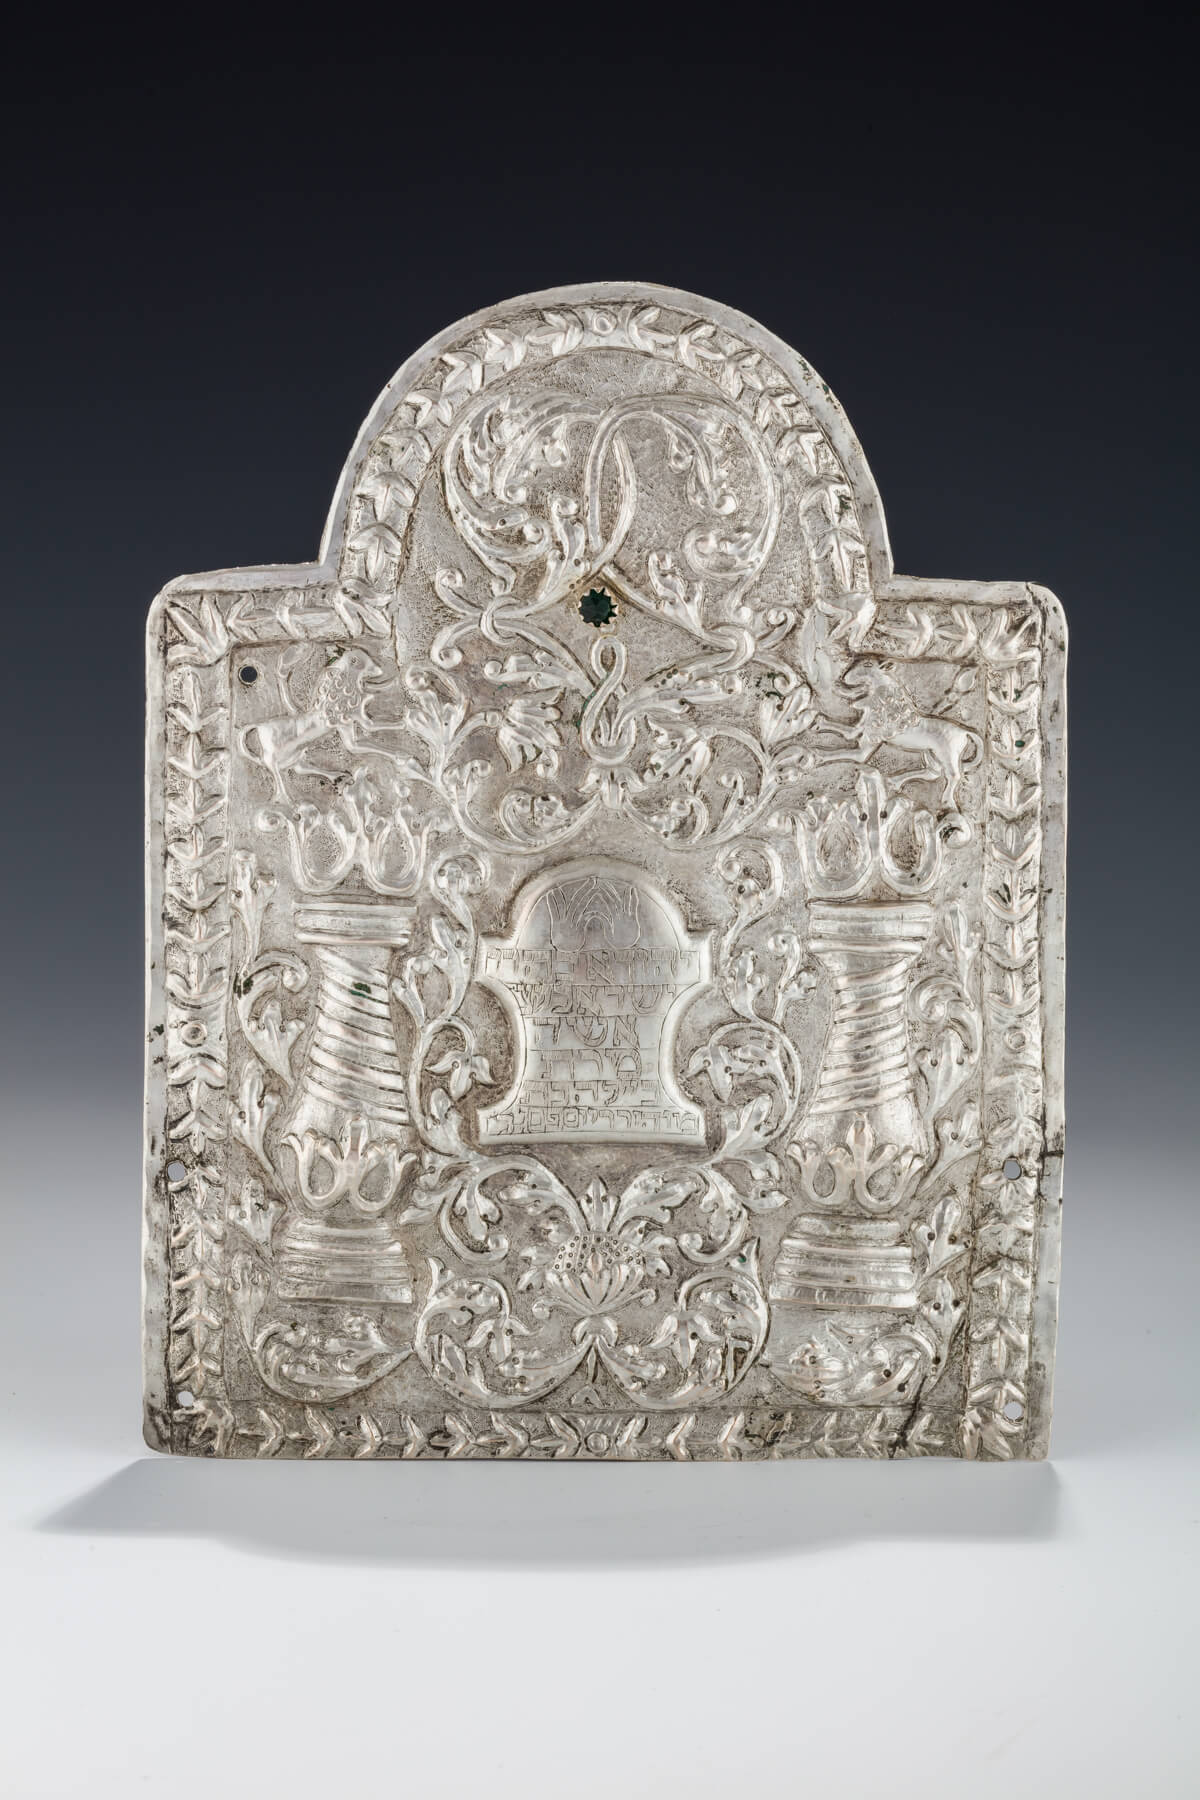 094. A Rare and Important Silver Torah Shield